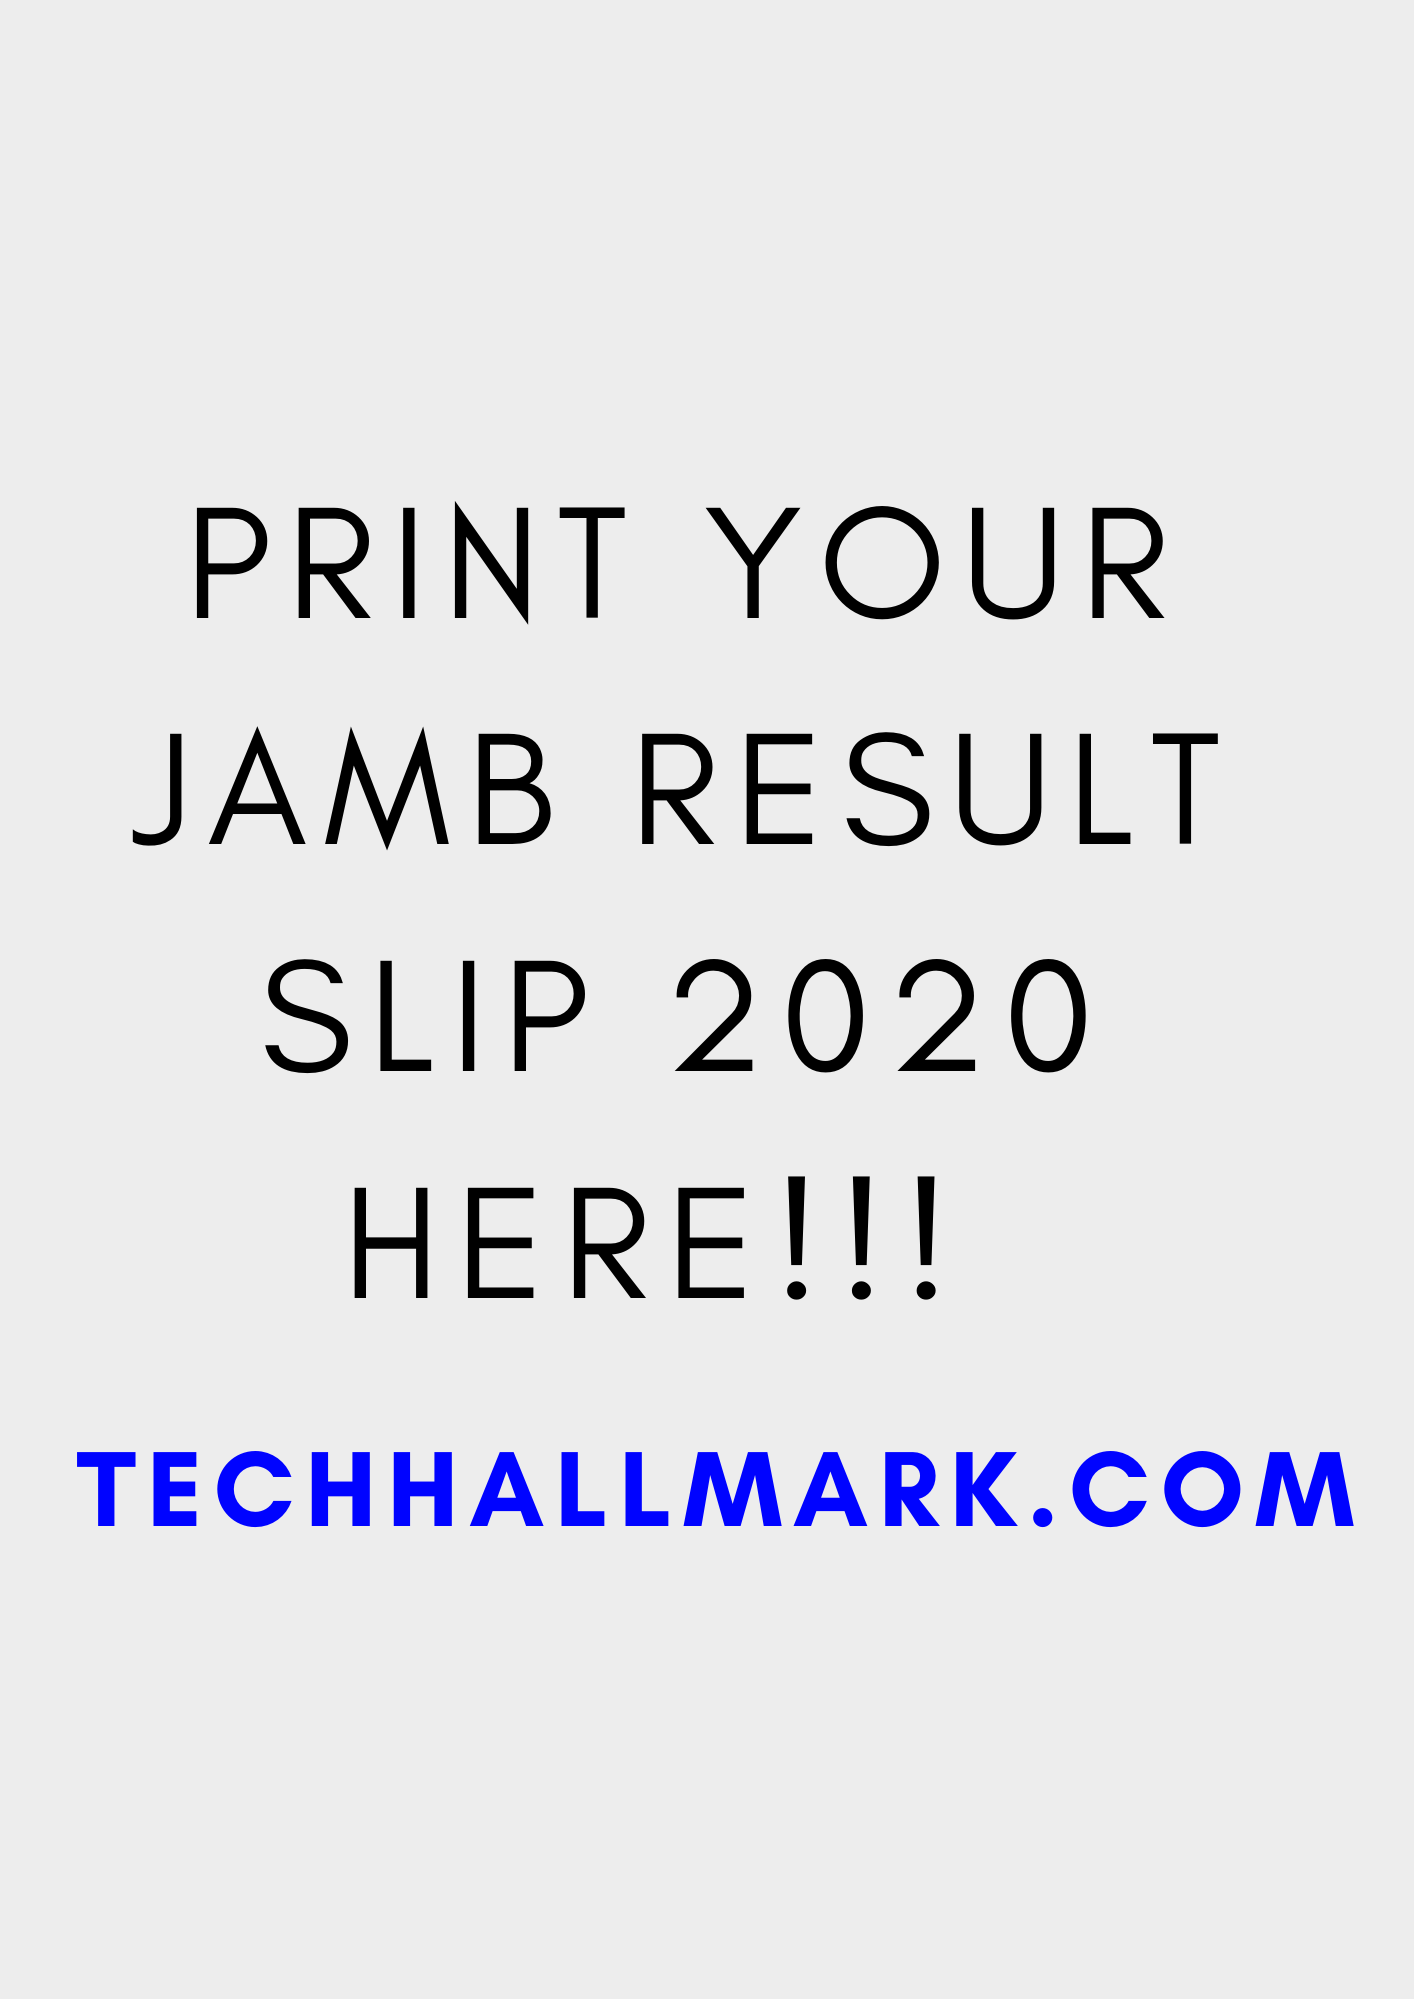 How to print original jamb result